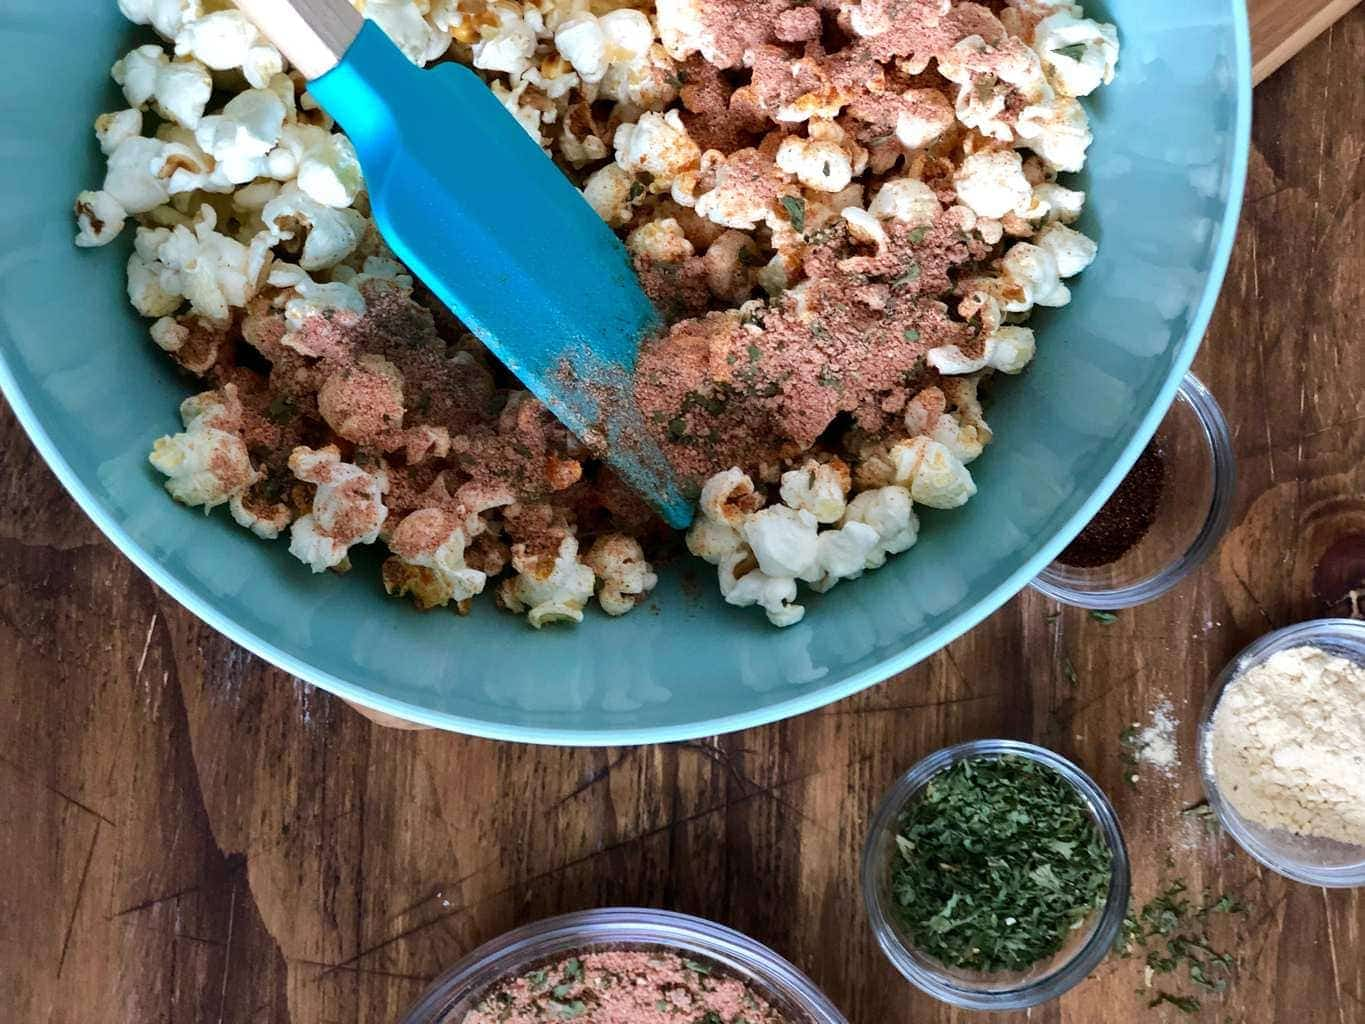 Popcorn and seasonings in blue bowl